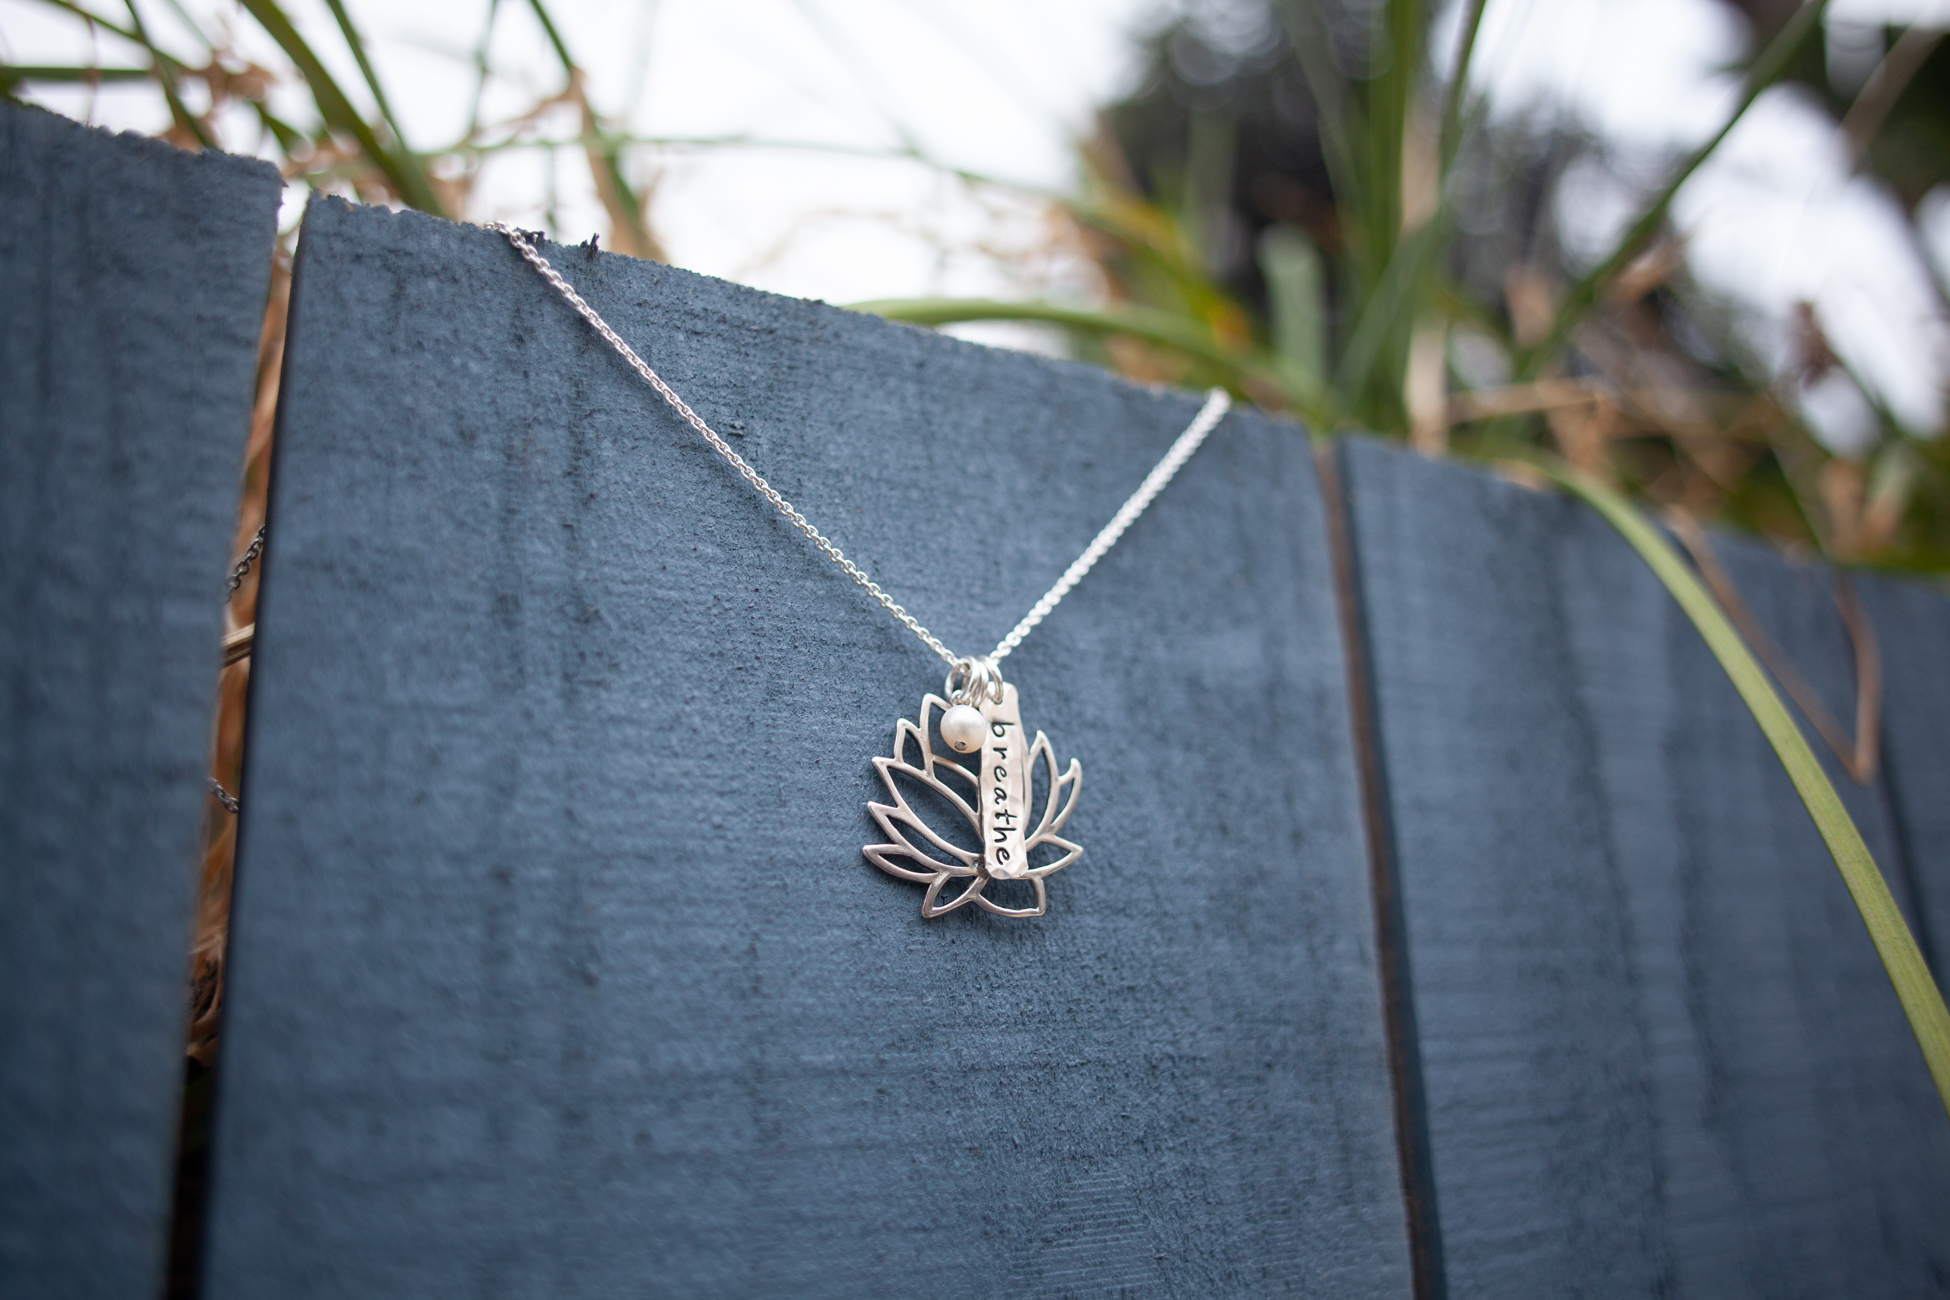 Fig. 10 Breathe necklace by Tracy Tayan designs on a blue fence in Venice, California.